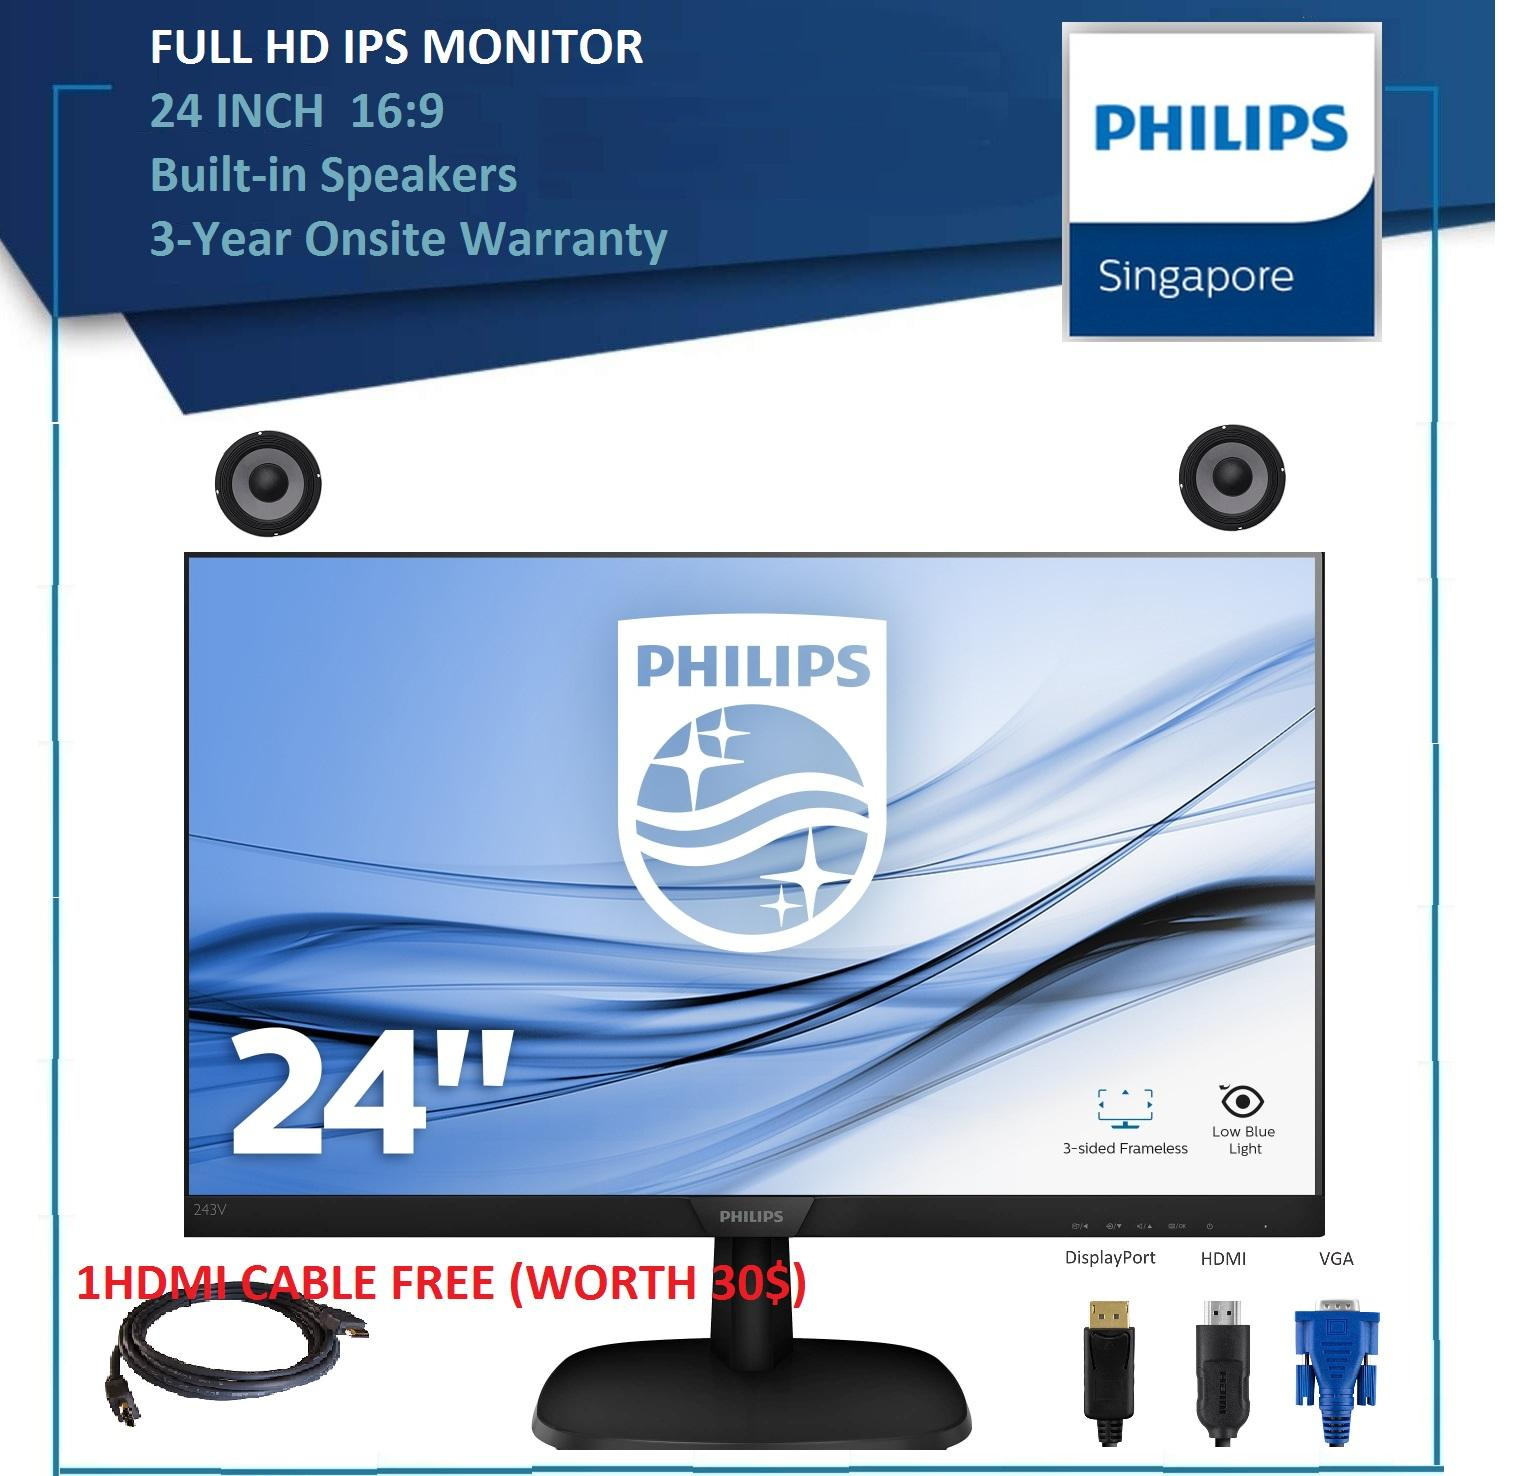 [New Arrival Oct 2019]New Philips sealed box model 243V7QJAB 24 INCH FullHD 5ms HDMI port, VGA port and DisplayPort 1.2, Built-in Speakers 2W x 2,FullHD Flicker-free IPS screen monitor with 3 years philips onsite warranty ,Supports VESA mount,Free 1 HDMI